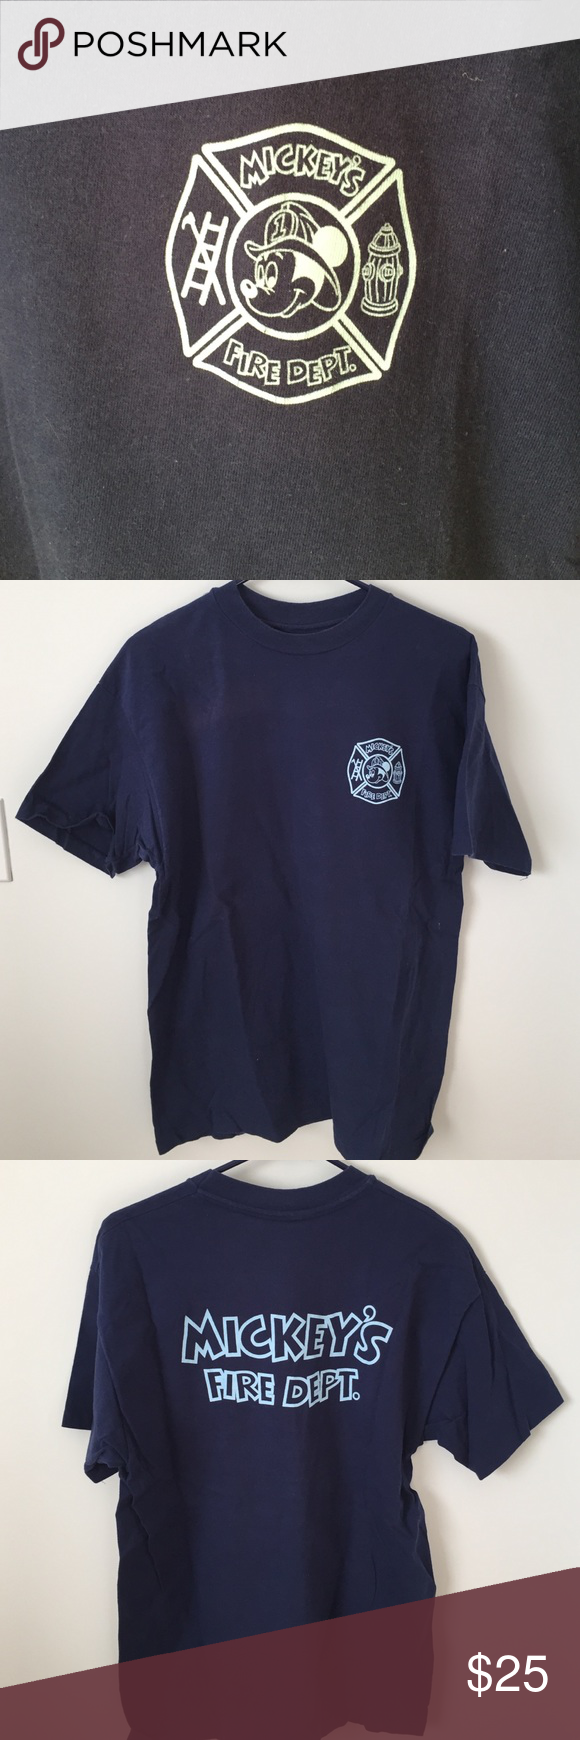 Disney Mickey Mouse Fire Tee From Wdw From Magic Kingdom In Fl Tag